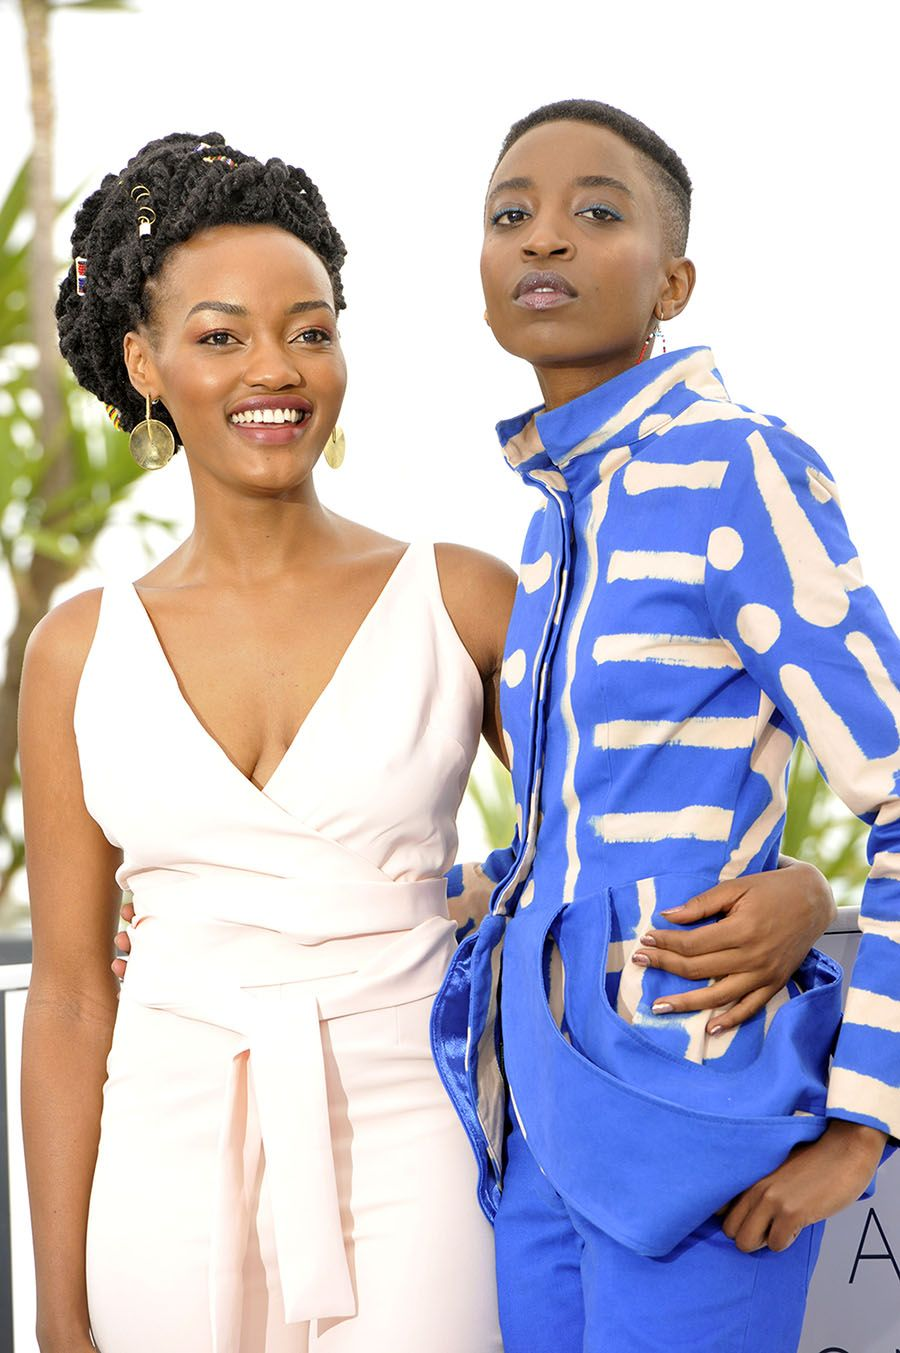 Kenyan Lesbian Movie Set To Make History At Cannes Film Festival